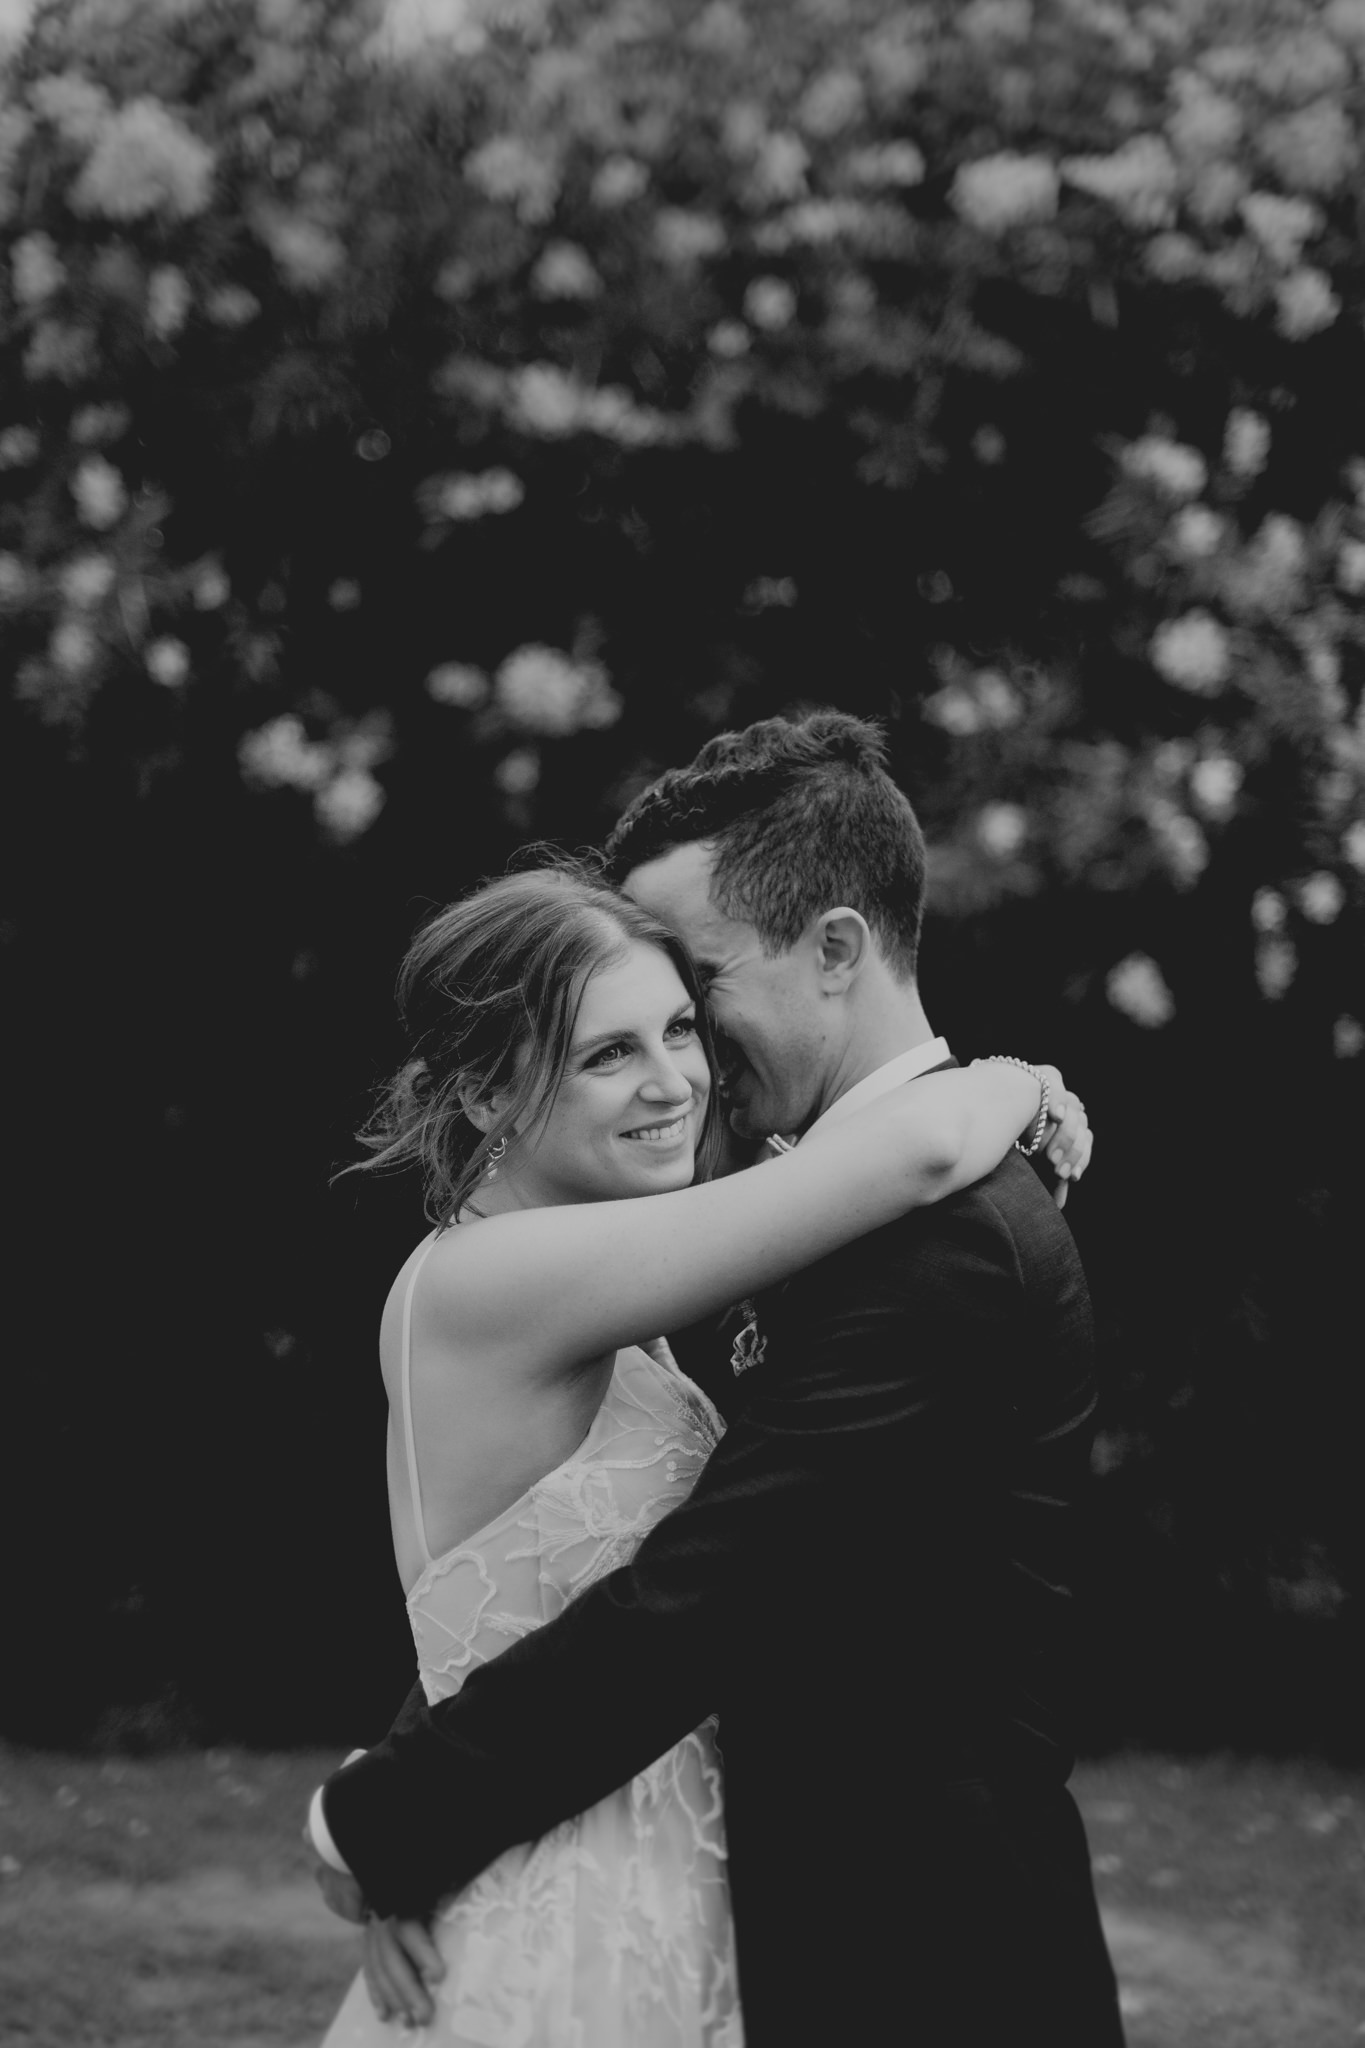 A newly married bride smiles as she hugs her groom